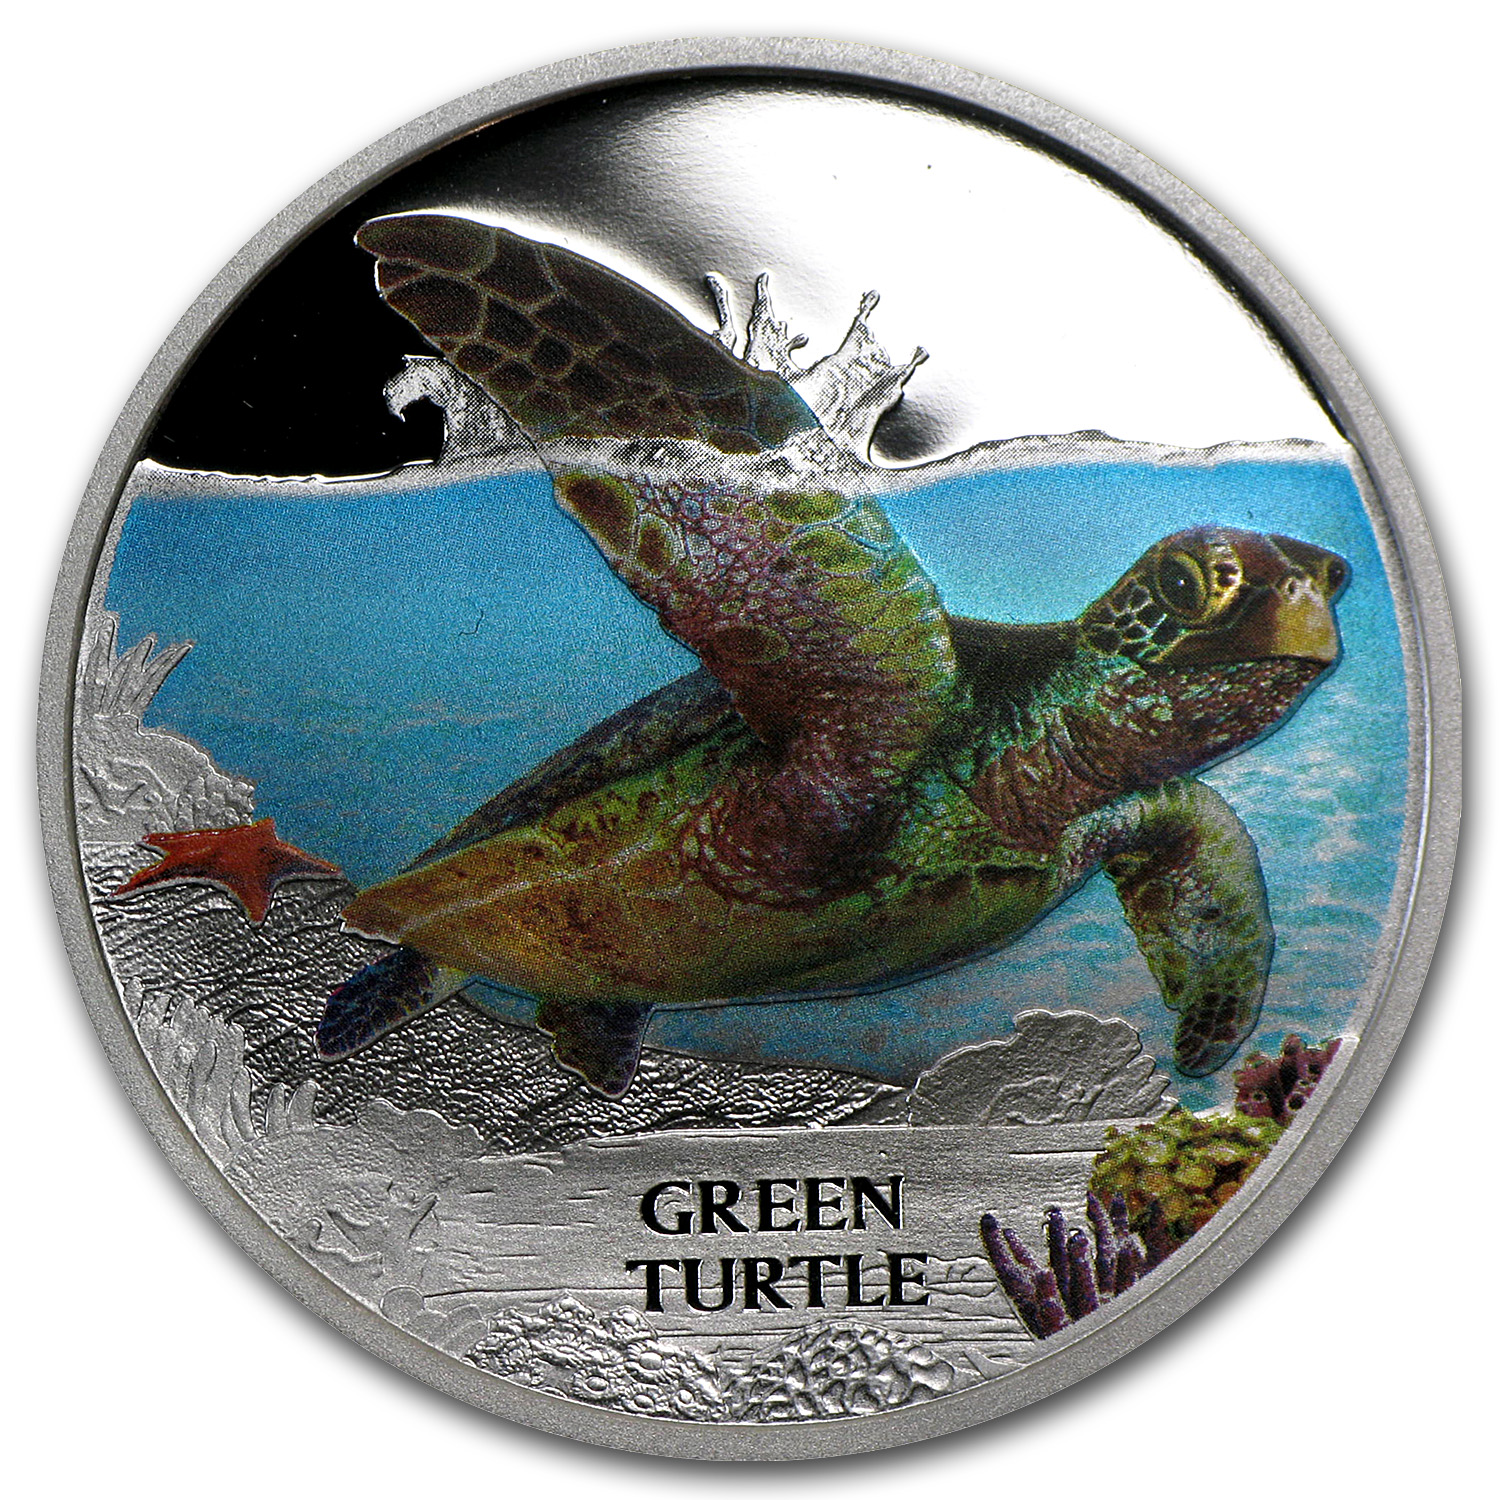 2014 1 oz Proof Silver Green Turtle - Endangered and Extinct